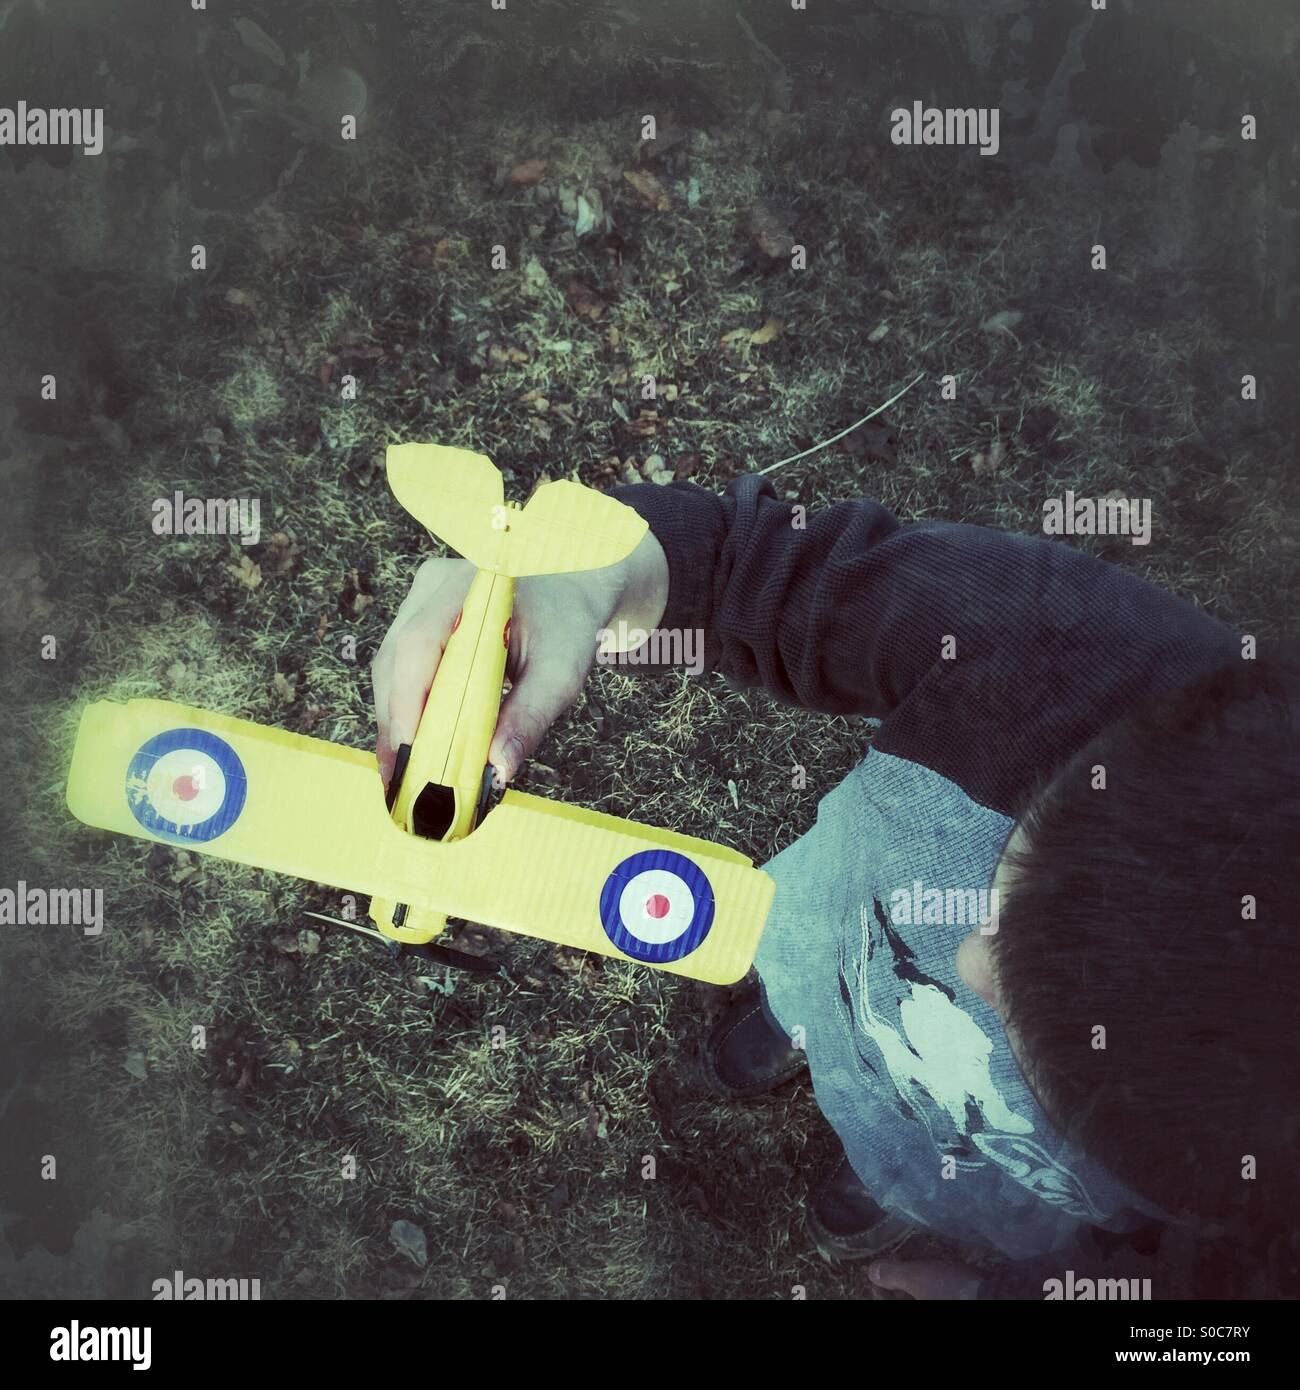 Looking down at a boy holding a model airplane - Stock Image